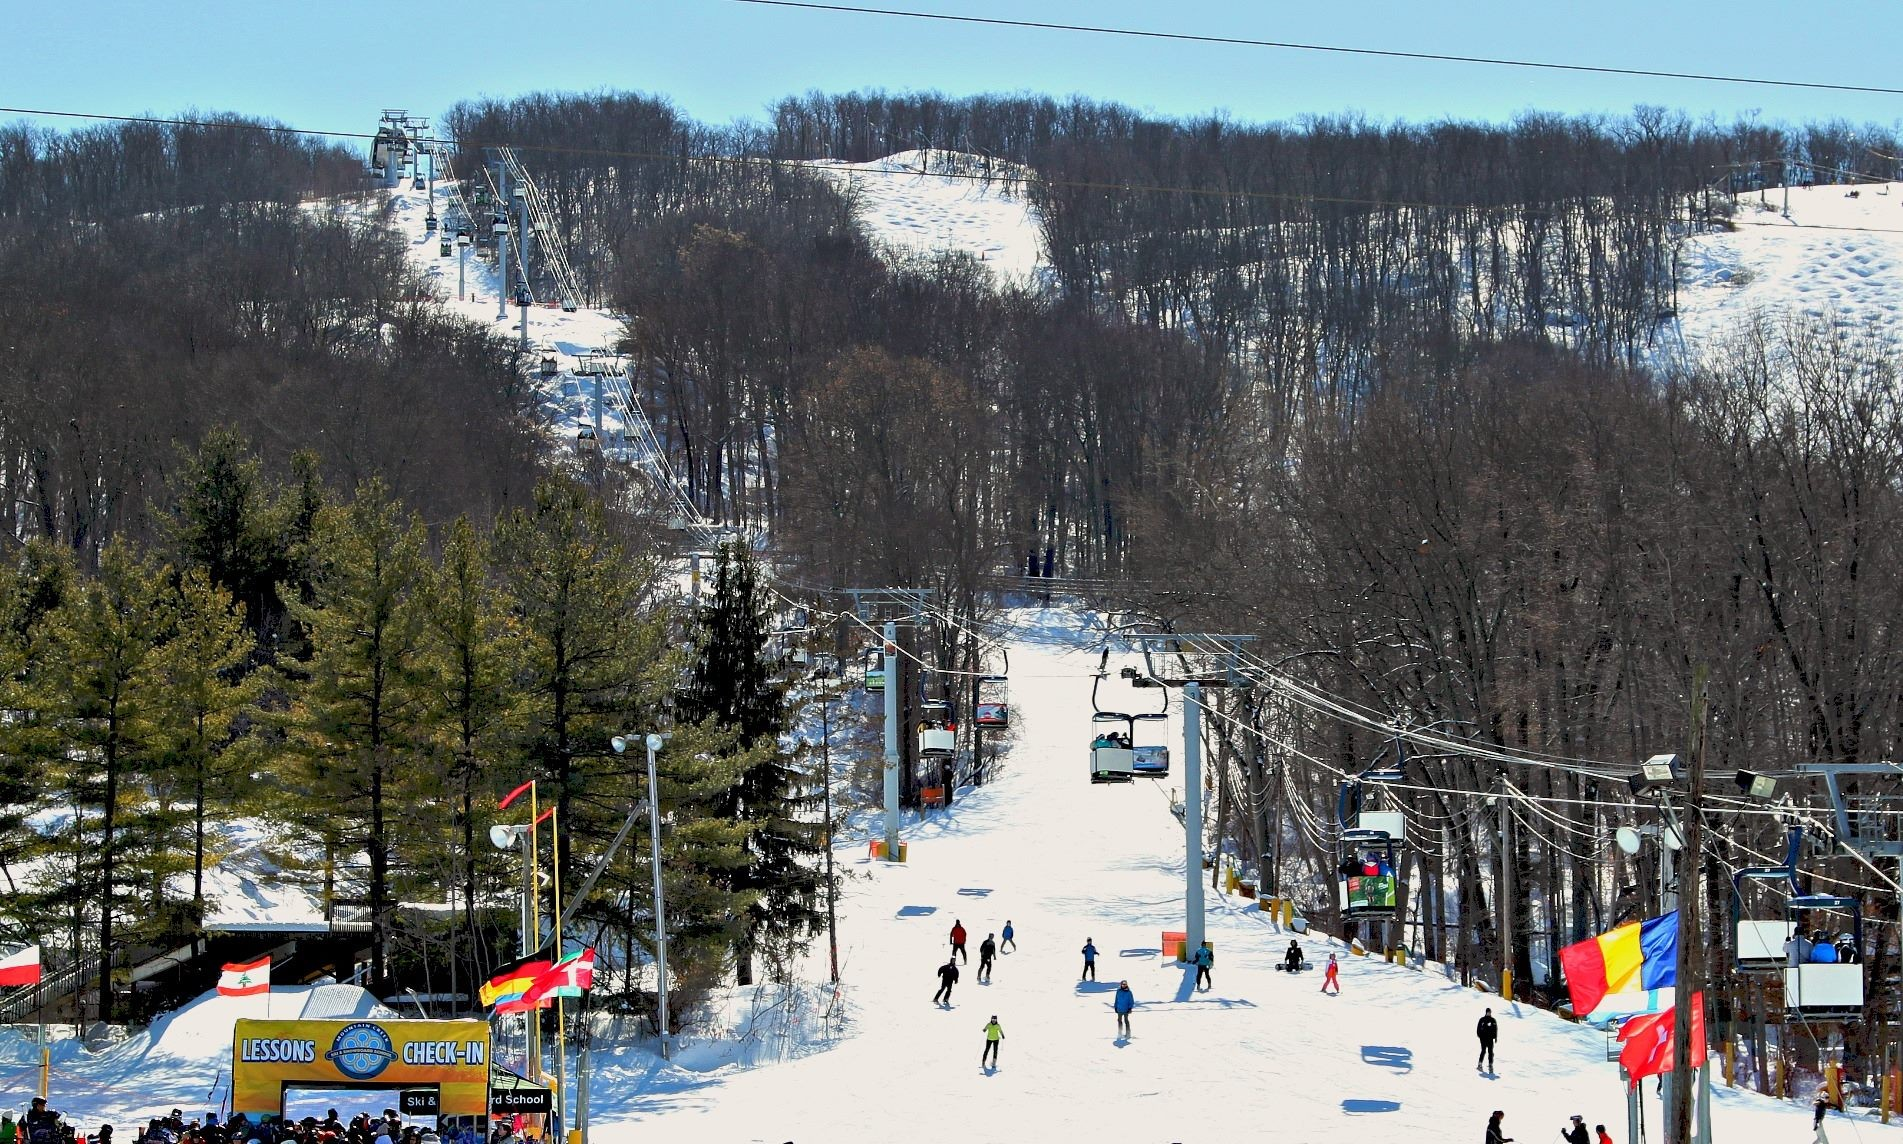 the best places to go skiing in new jersey - things to do | jcfamilies